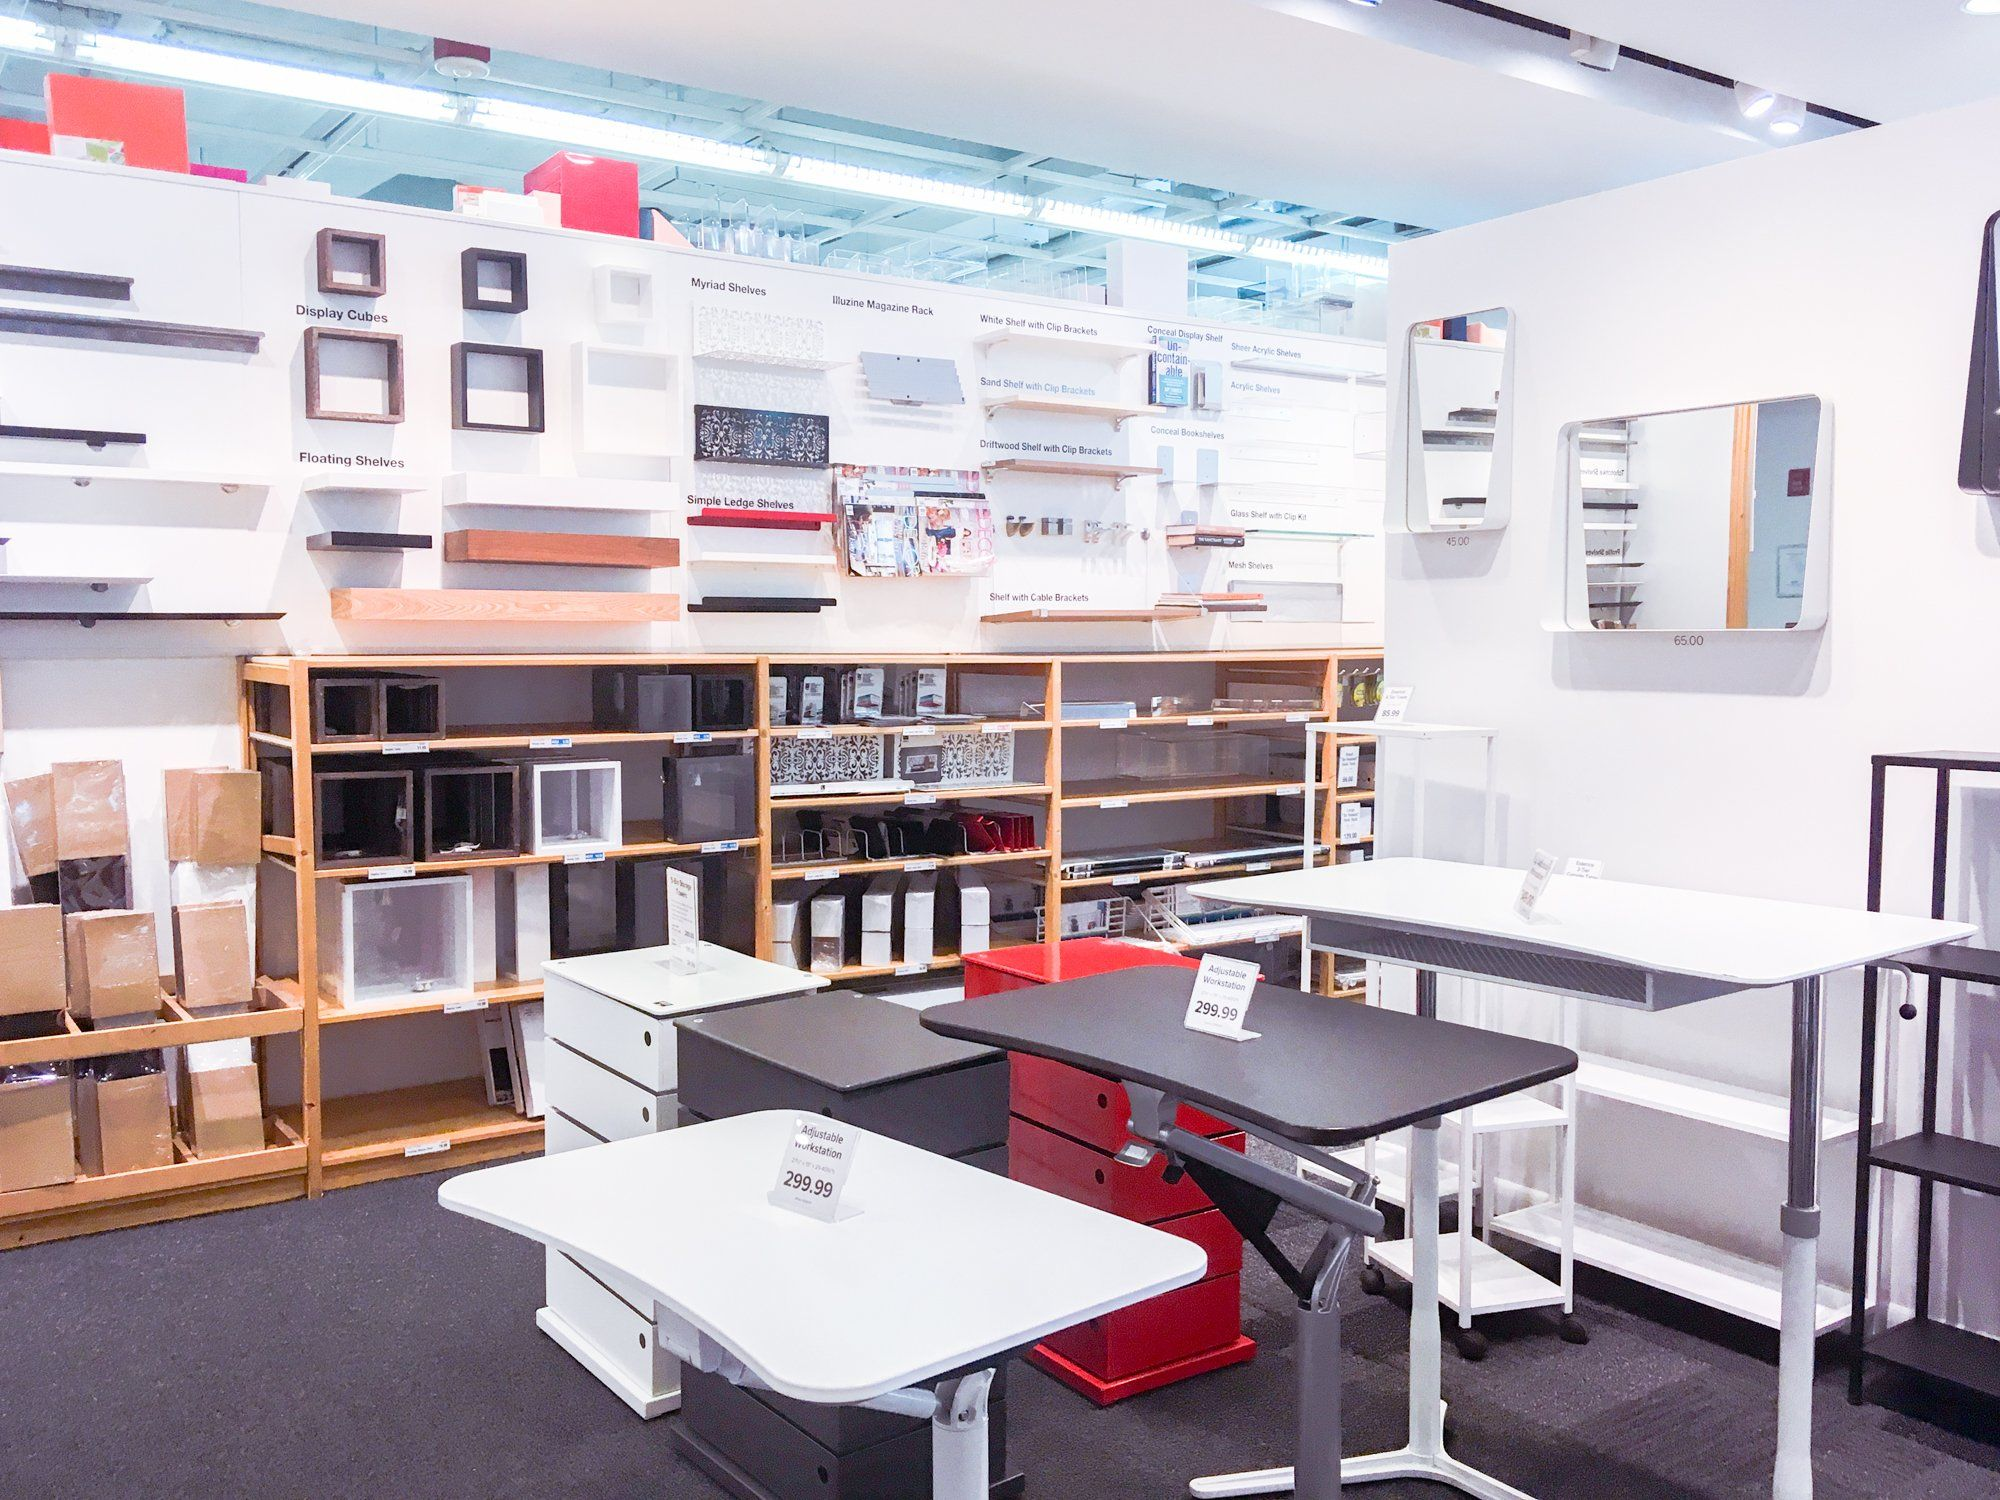 We visited Bed Bath & Beyond and The Container Store — and one was clearly better than the other